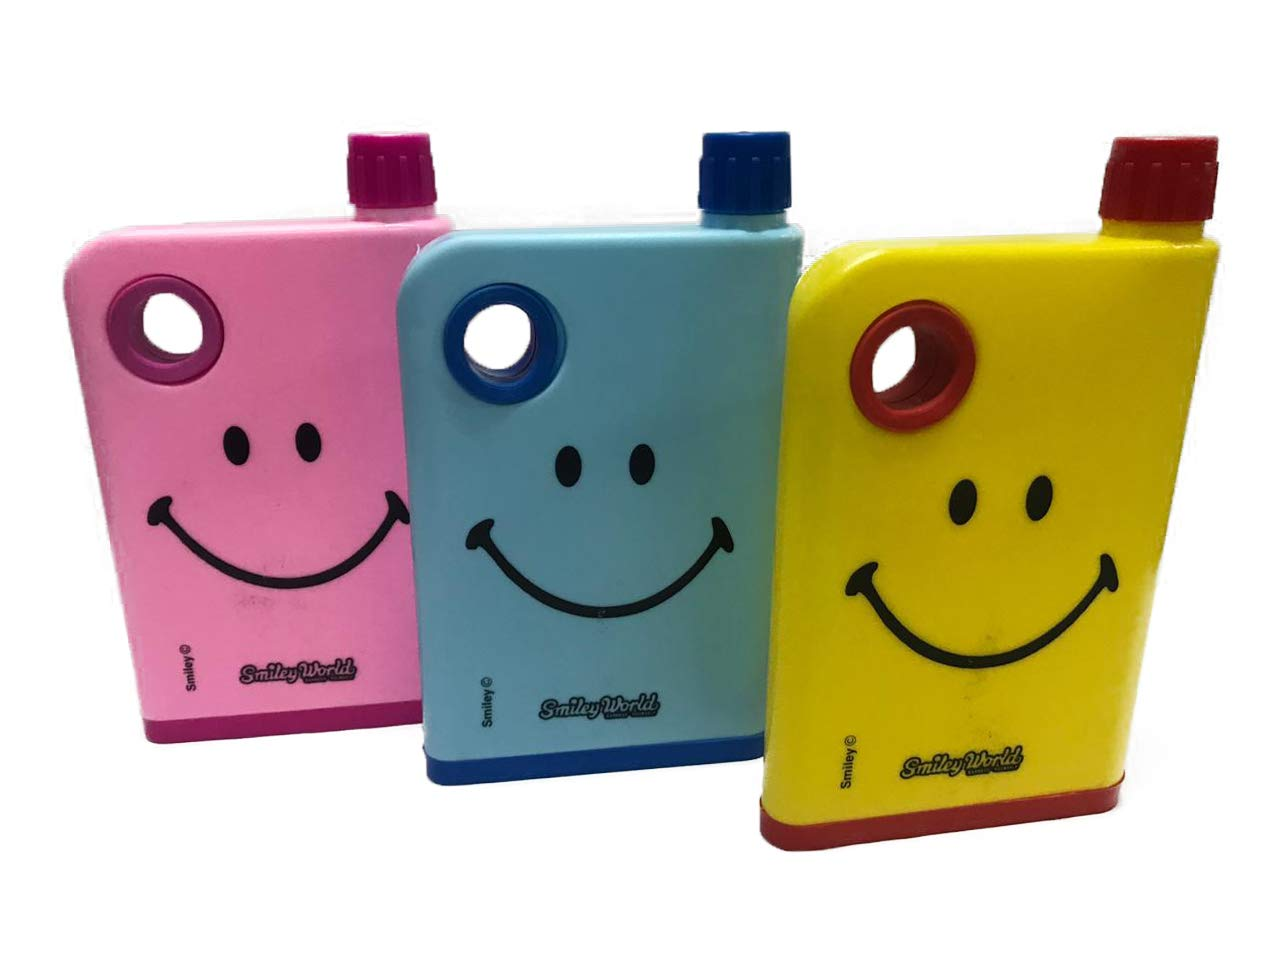 Kids Trends Smiley Printed A5 Notebook Water Bottle,Return Gifts for Kids Birthday Party (Pack of 3) (B07XMPFPGM) Amazon Price History, Amazon Price Tracker